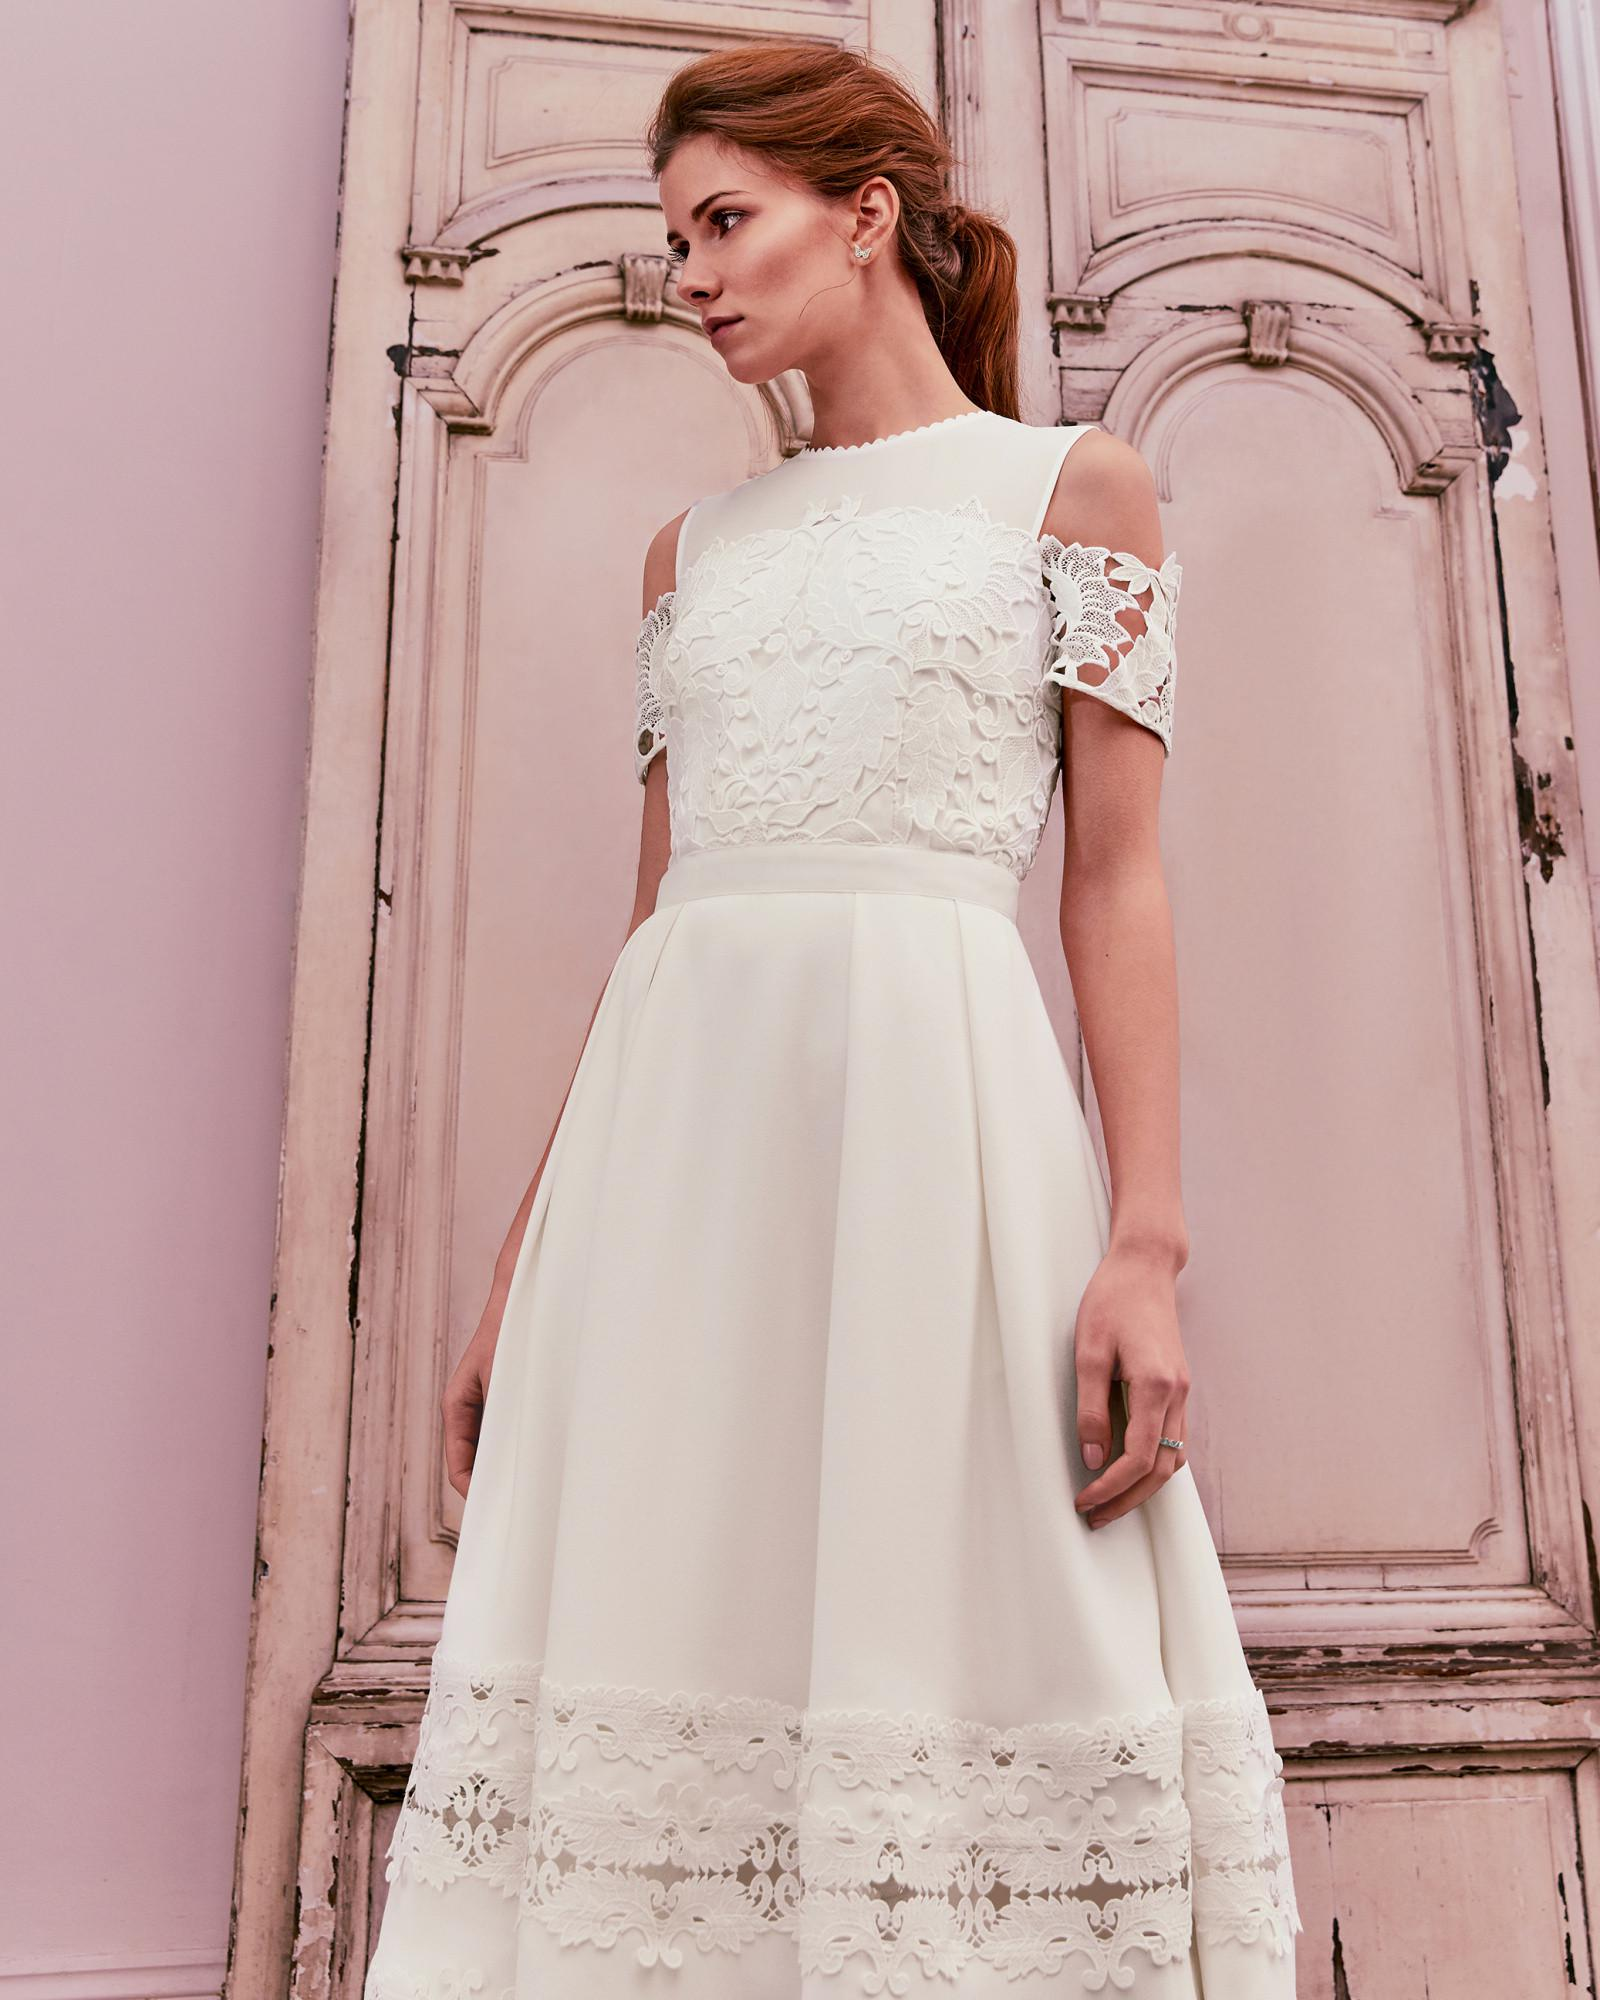 Ted Baker Structured Lace Midi Dress in White - Lyst